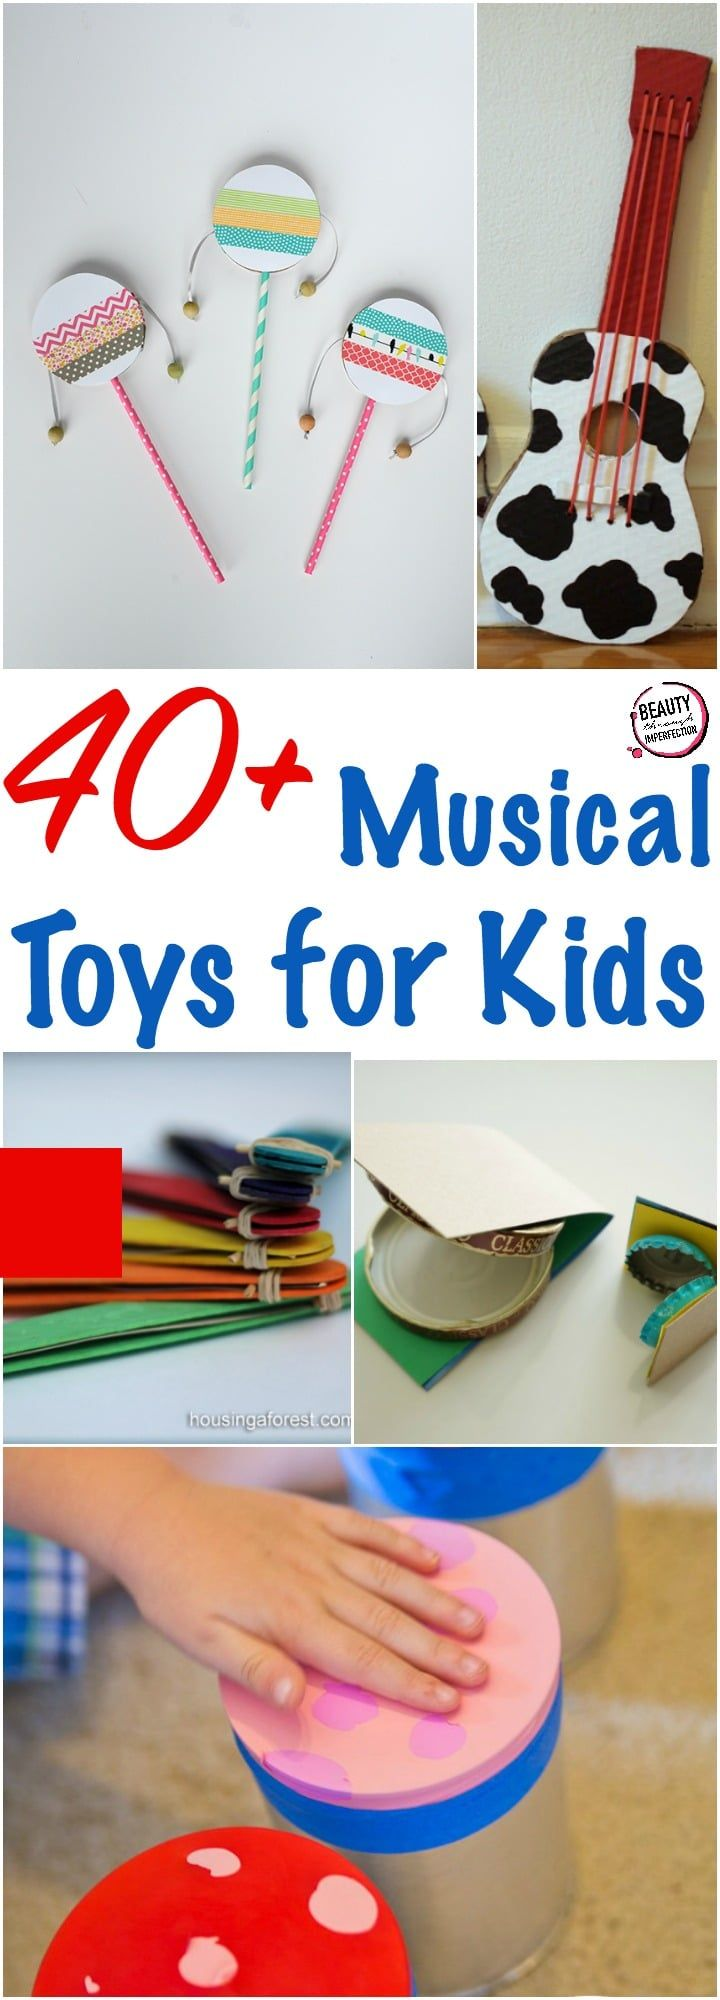 We know how important musical education is for kids, which is why toy musical instruments can be so fun and helpful for them! Here are some of the best musical toys for kids. This post contains affiliate links for your convenience Musical toys Melissa and Doug Band in a Box Electronic guitar shirt (you can...